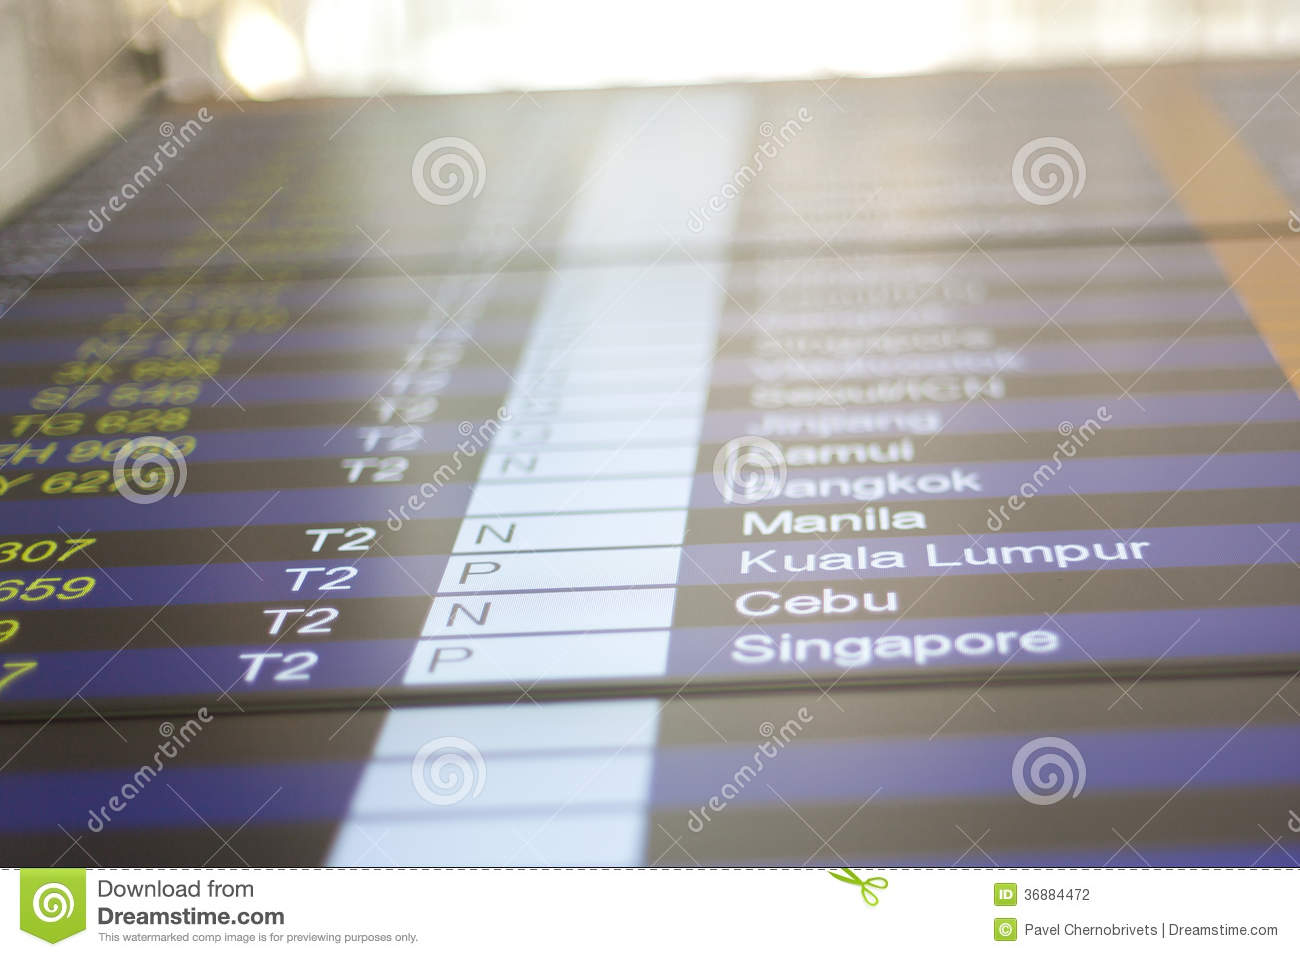 Download Bordo Di Informazioni Di Volo In Aeroporto. Fotografia Stock - Immagine di info, billboard: 36884472